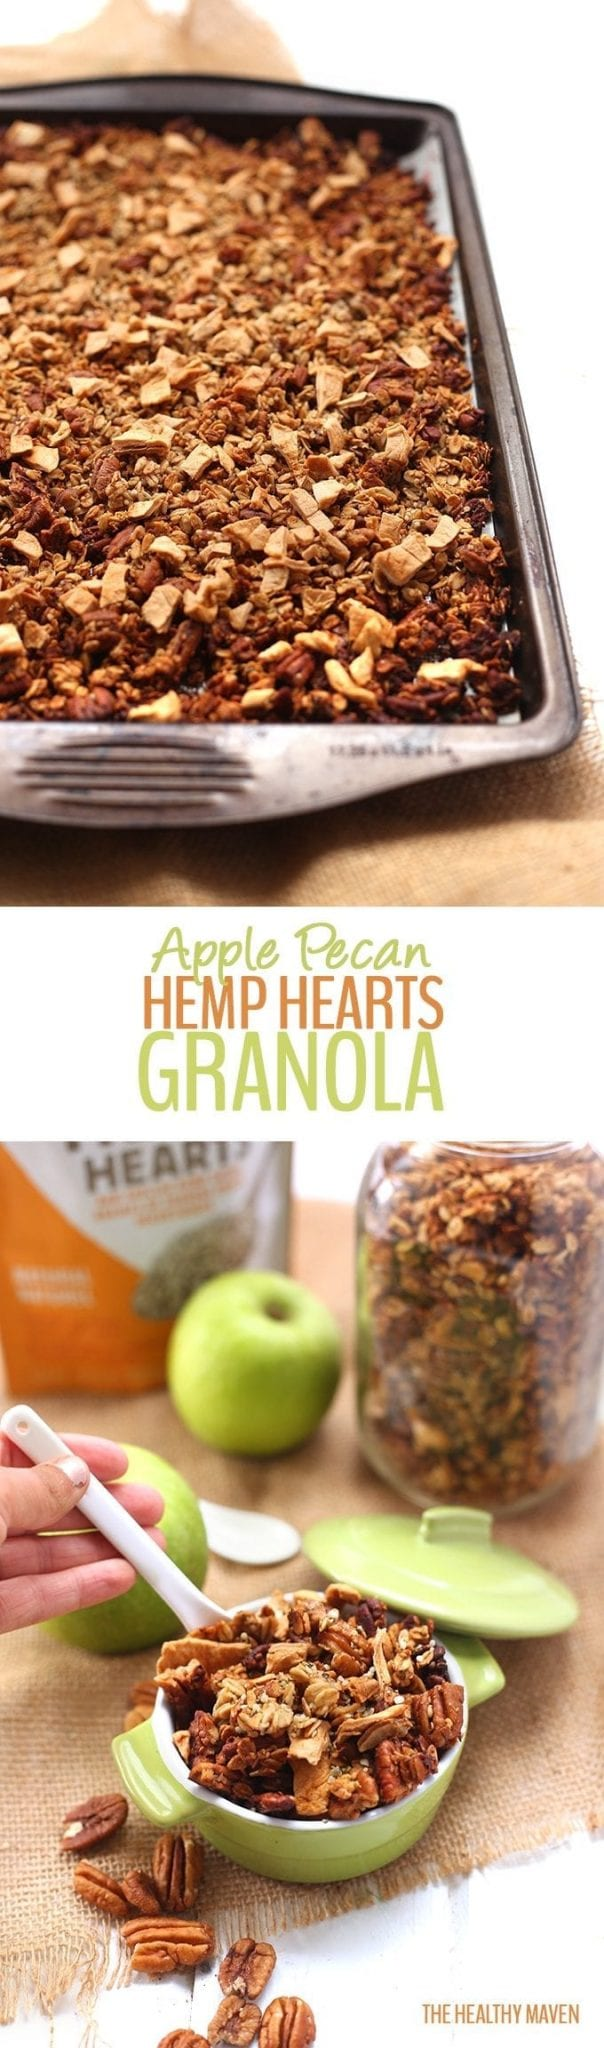 An easy fall breakfast recipe for Apple Pecan Hemp Hearts Granola. Packed-full of healthy ingredients like whole-grain rolled oats, pecans and hemp hearts this granola will keep you full all morning long!